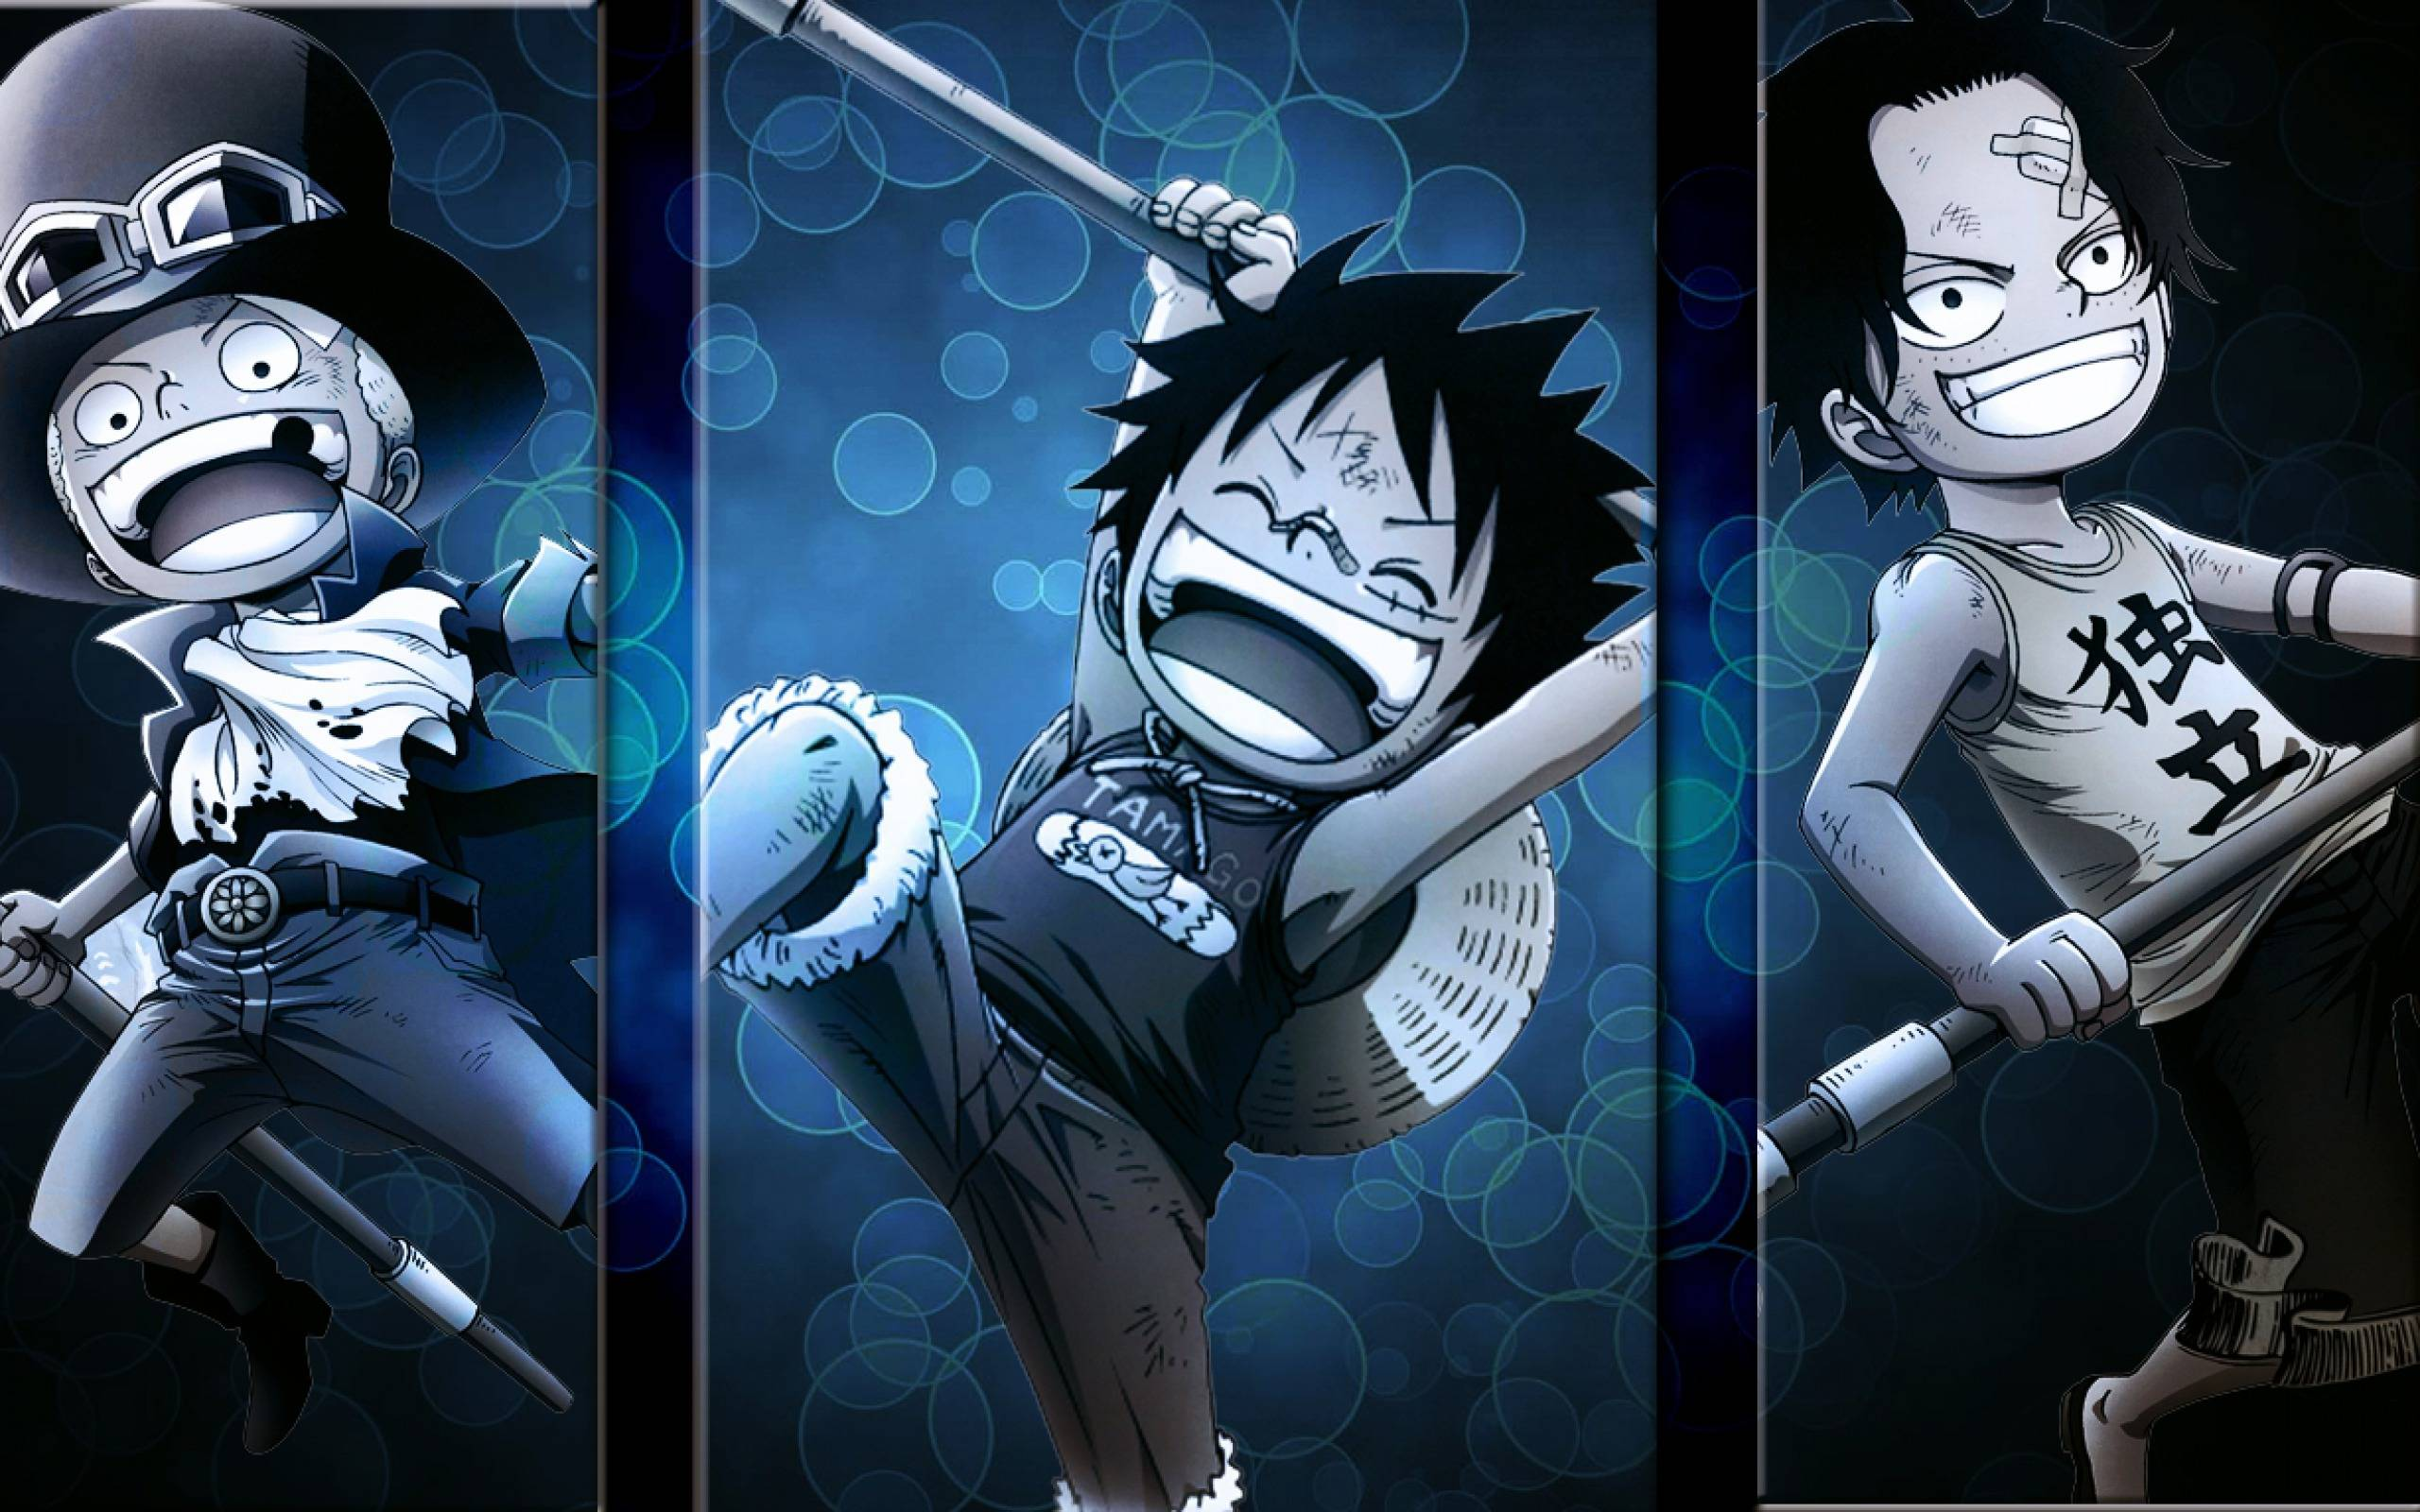 Free Download One Piece New World Sabo Wallpapers 10567 Hd